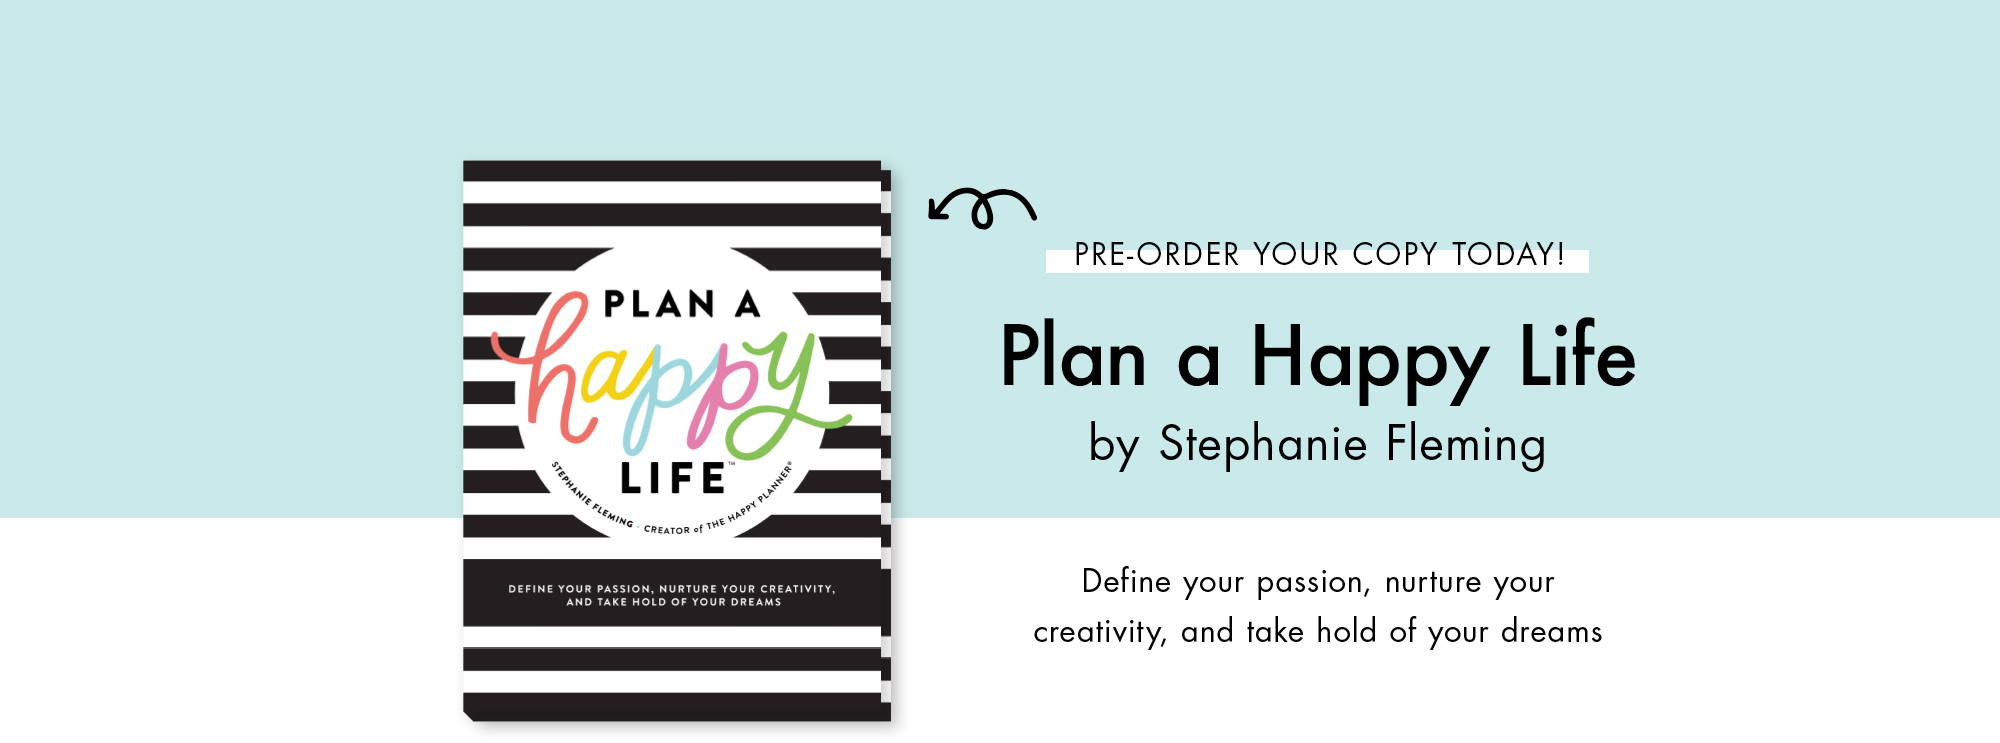 Pre-order your copy today! Plan a Happy Life by Stephanie Fleming. Define your passion, nurture your creativity, and take hold of your dreams